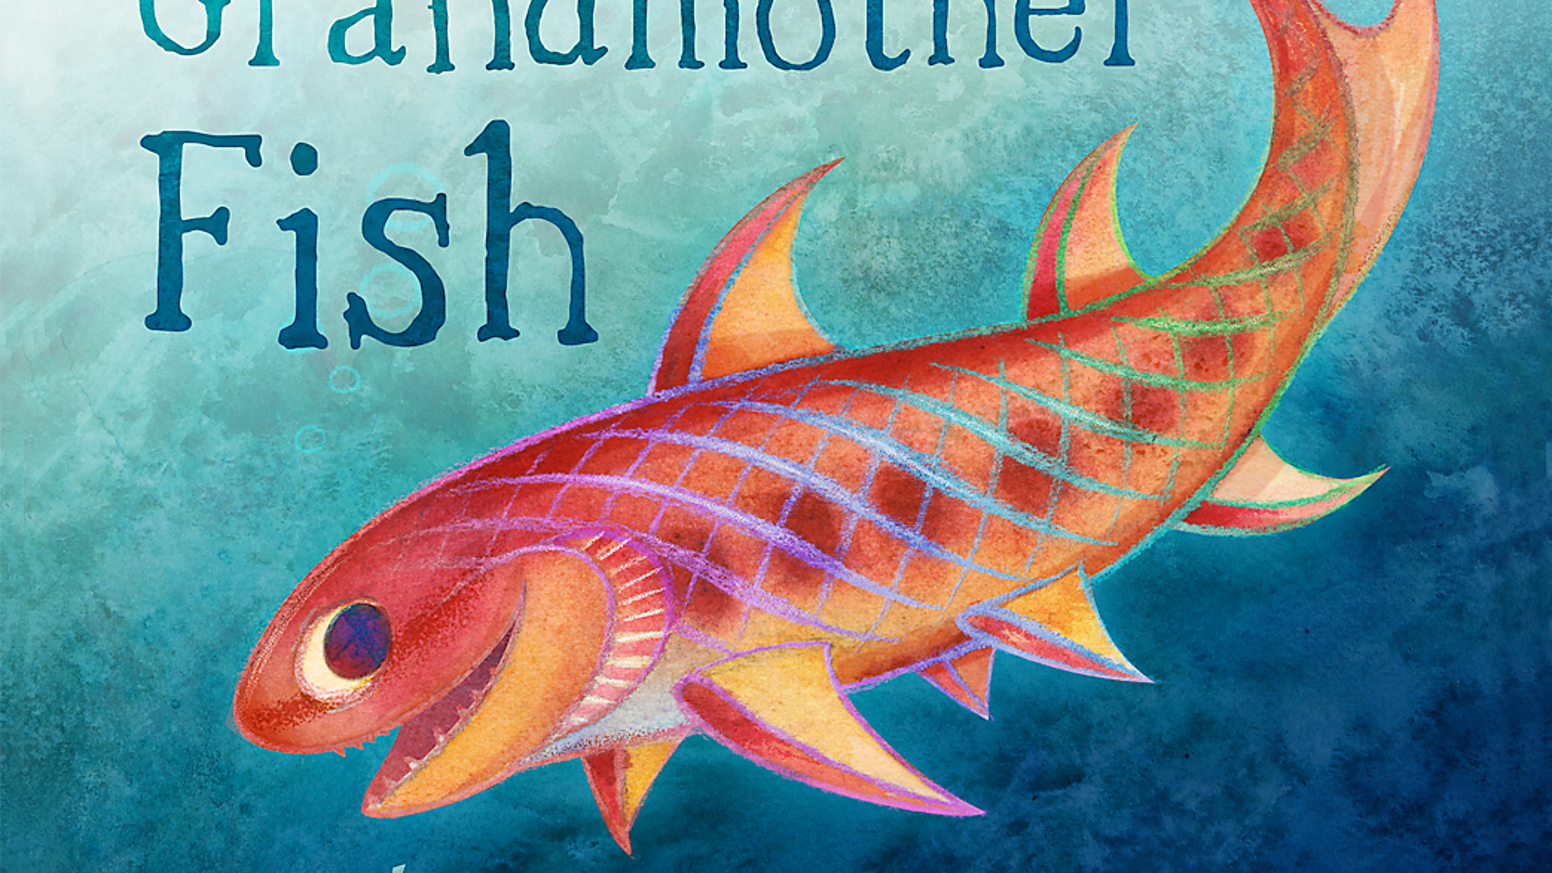 Grandmother Fish sold out but is now available from Macmillan. Ask for it at your favorite bookstore or order online.